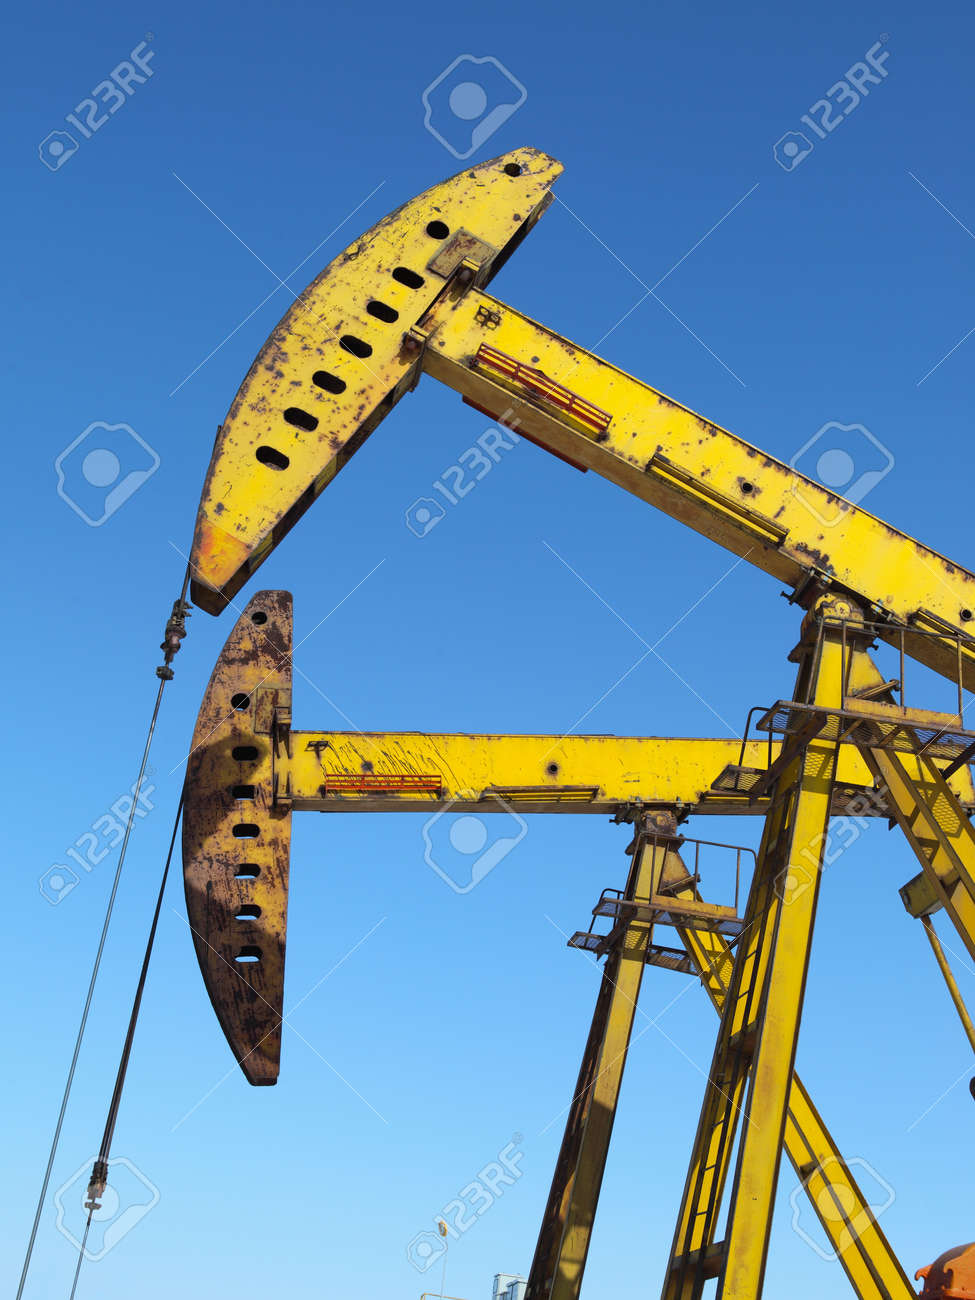 Oil pumps  Oil industry equipment Stock Photo - 17140444